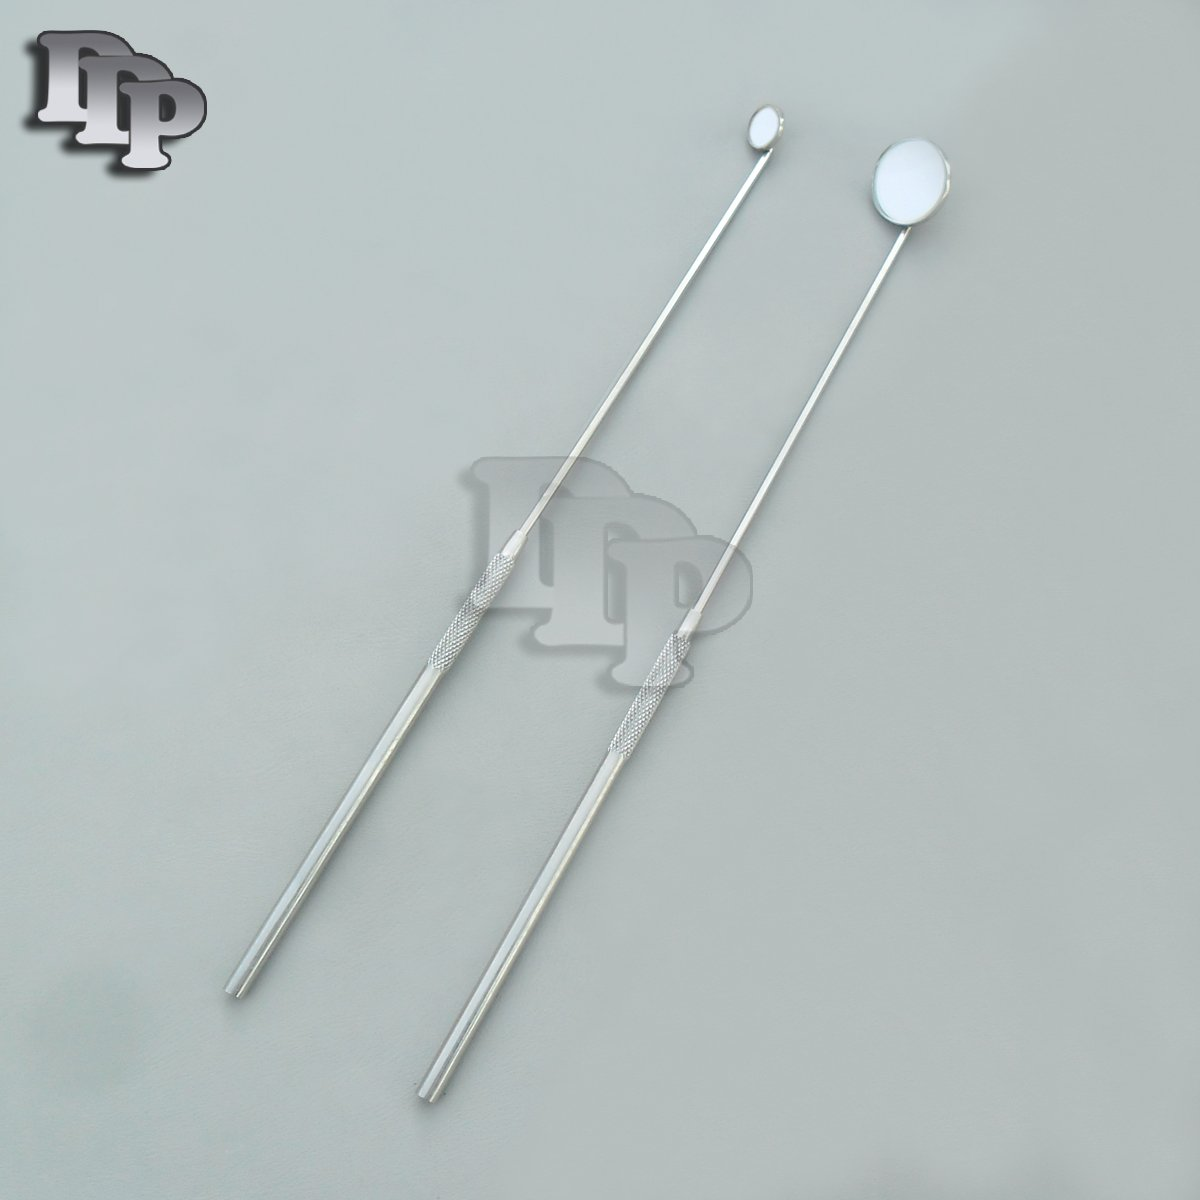 SET OF 2 LARYNGEAL BOILABLE HYGIENE DENTAL MIRRORS WITH HANDLE #00 #4 (DDP QUALITY)